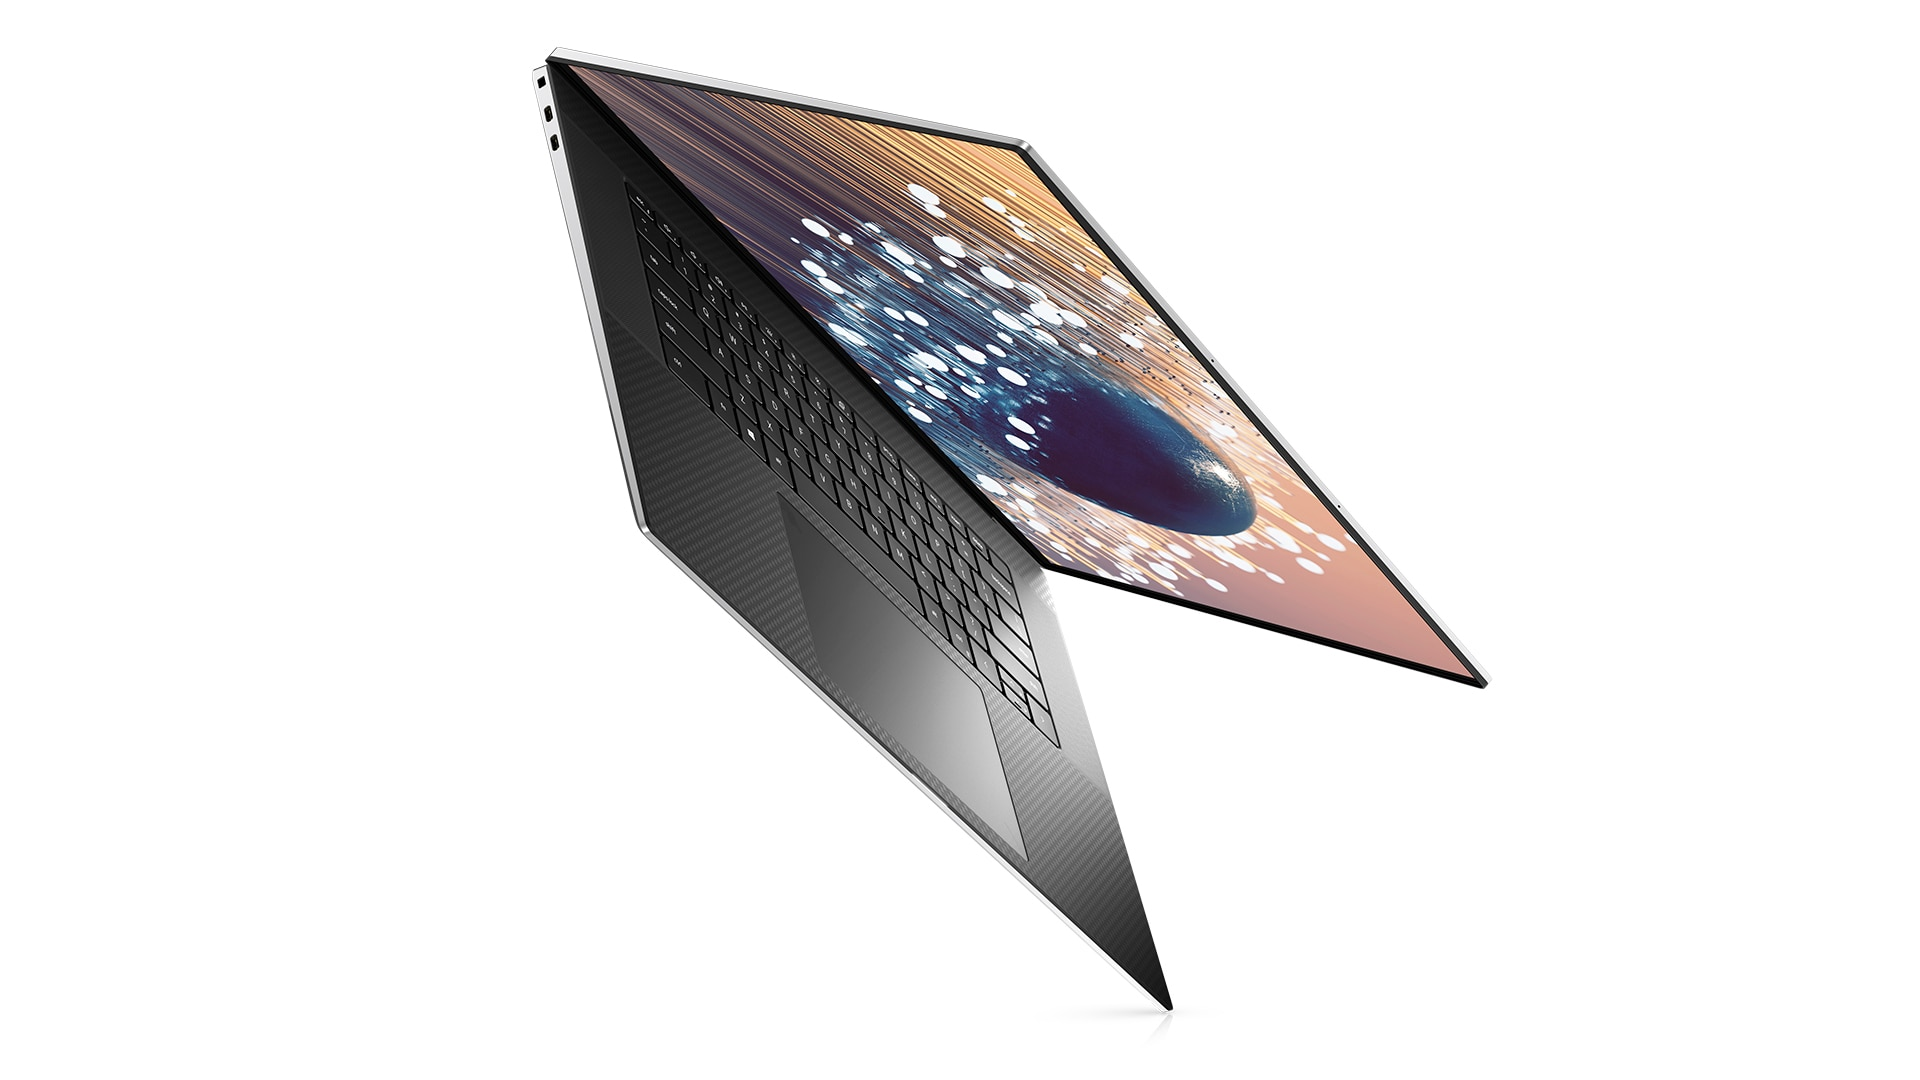 "Productoverzicht XPS 17"" laptop (2020) 1:06"